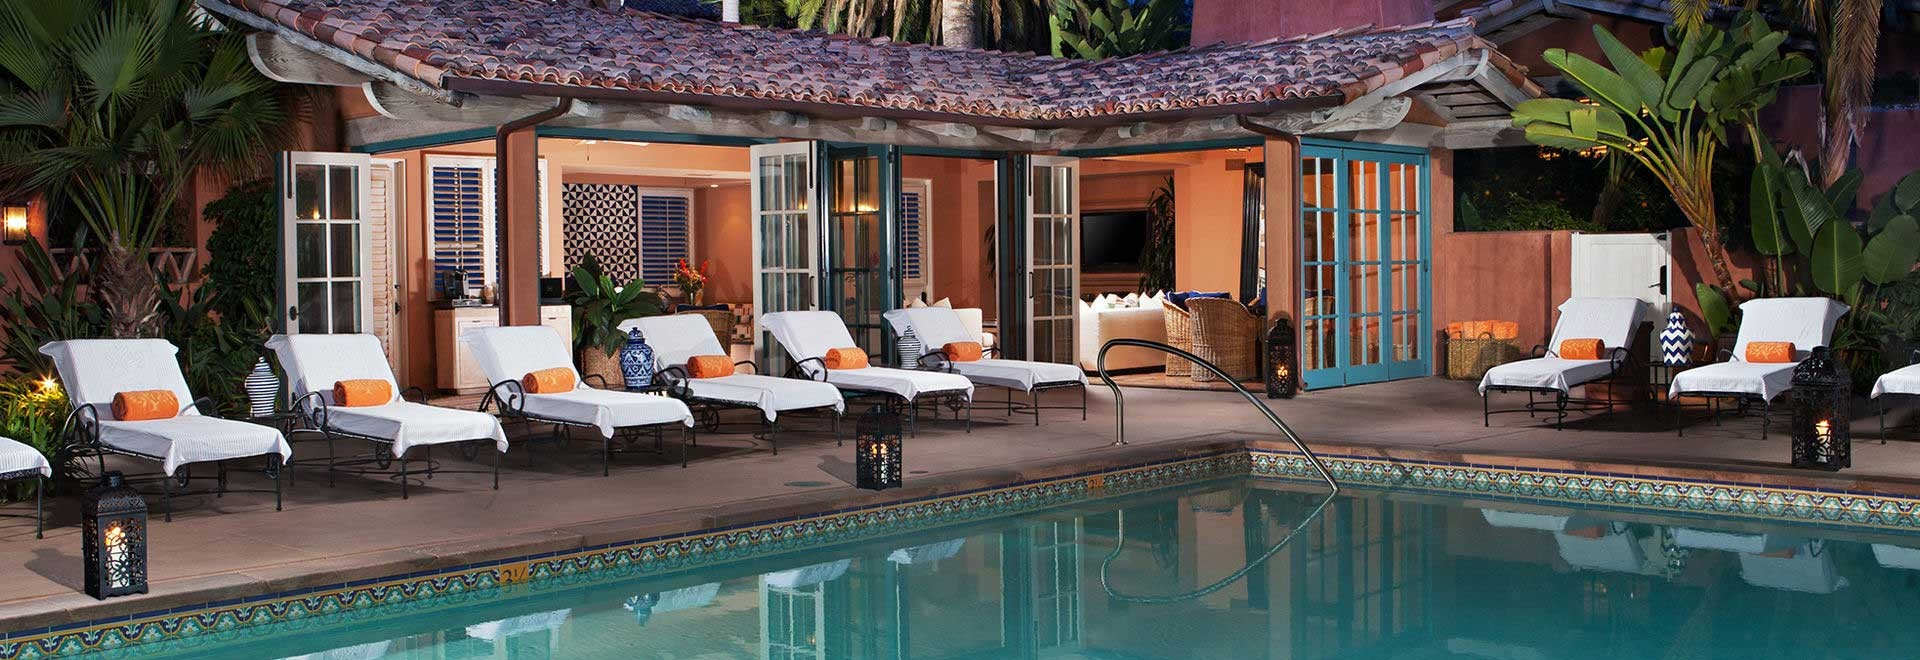 Rancho Valencia Resort and Spa, California - Book. Travel. Play.